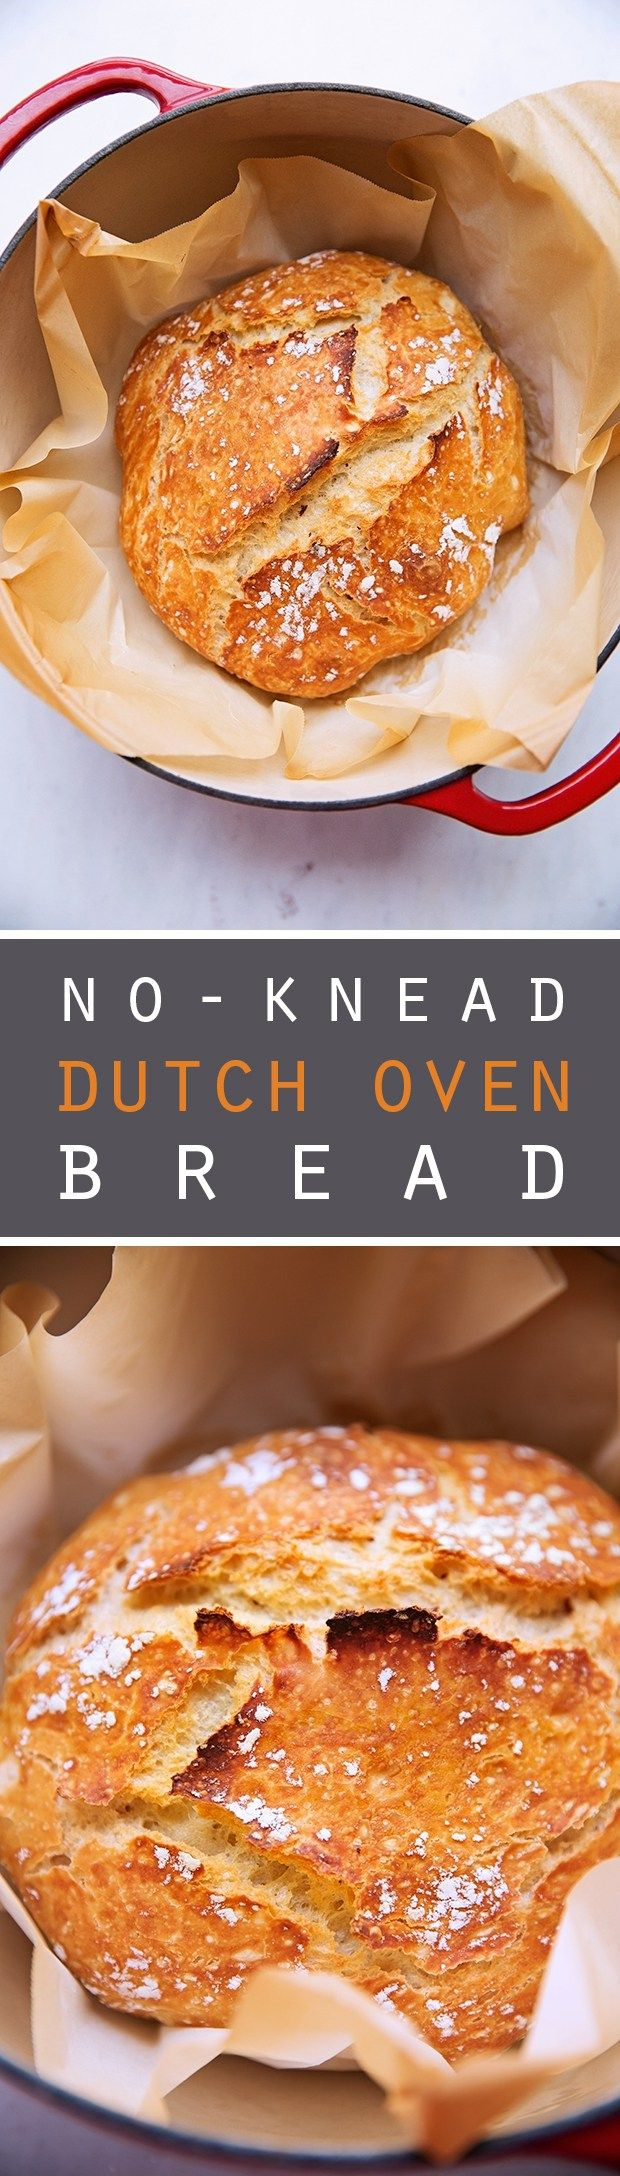 ... no knead bread no knead pizza dough no knead chocolate babka sprinkle